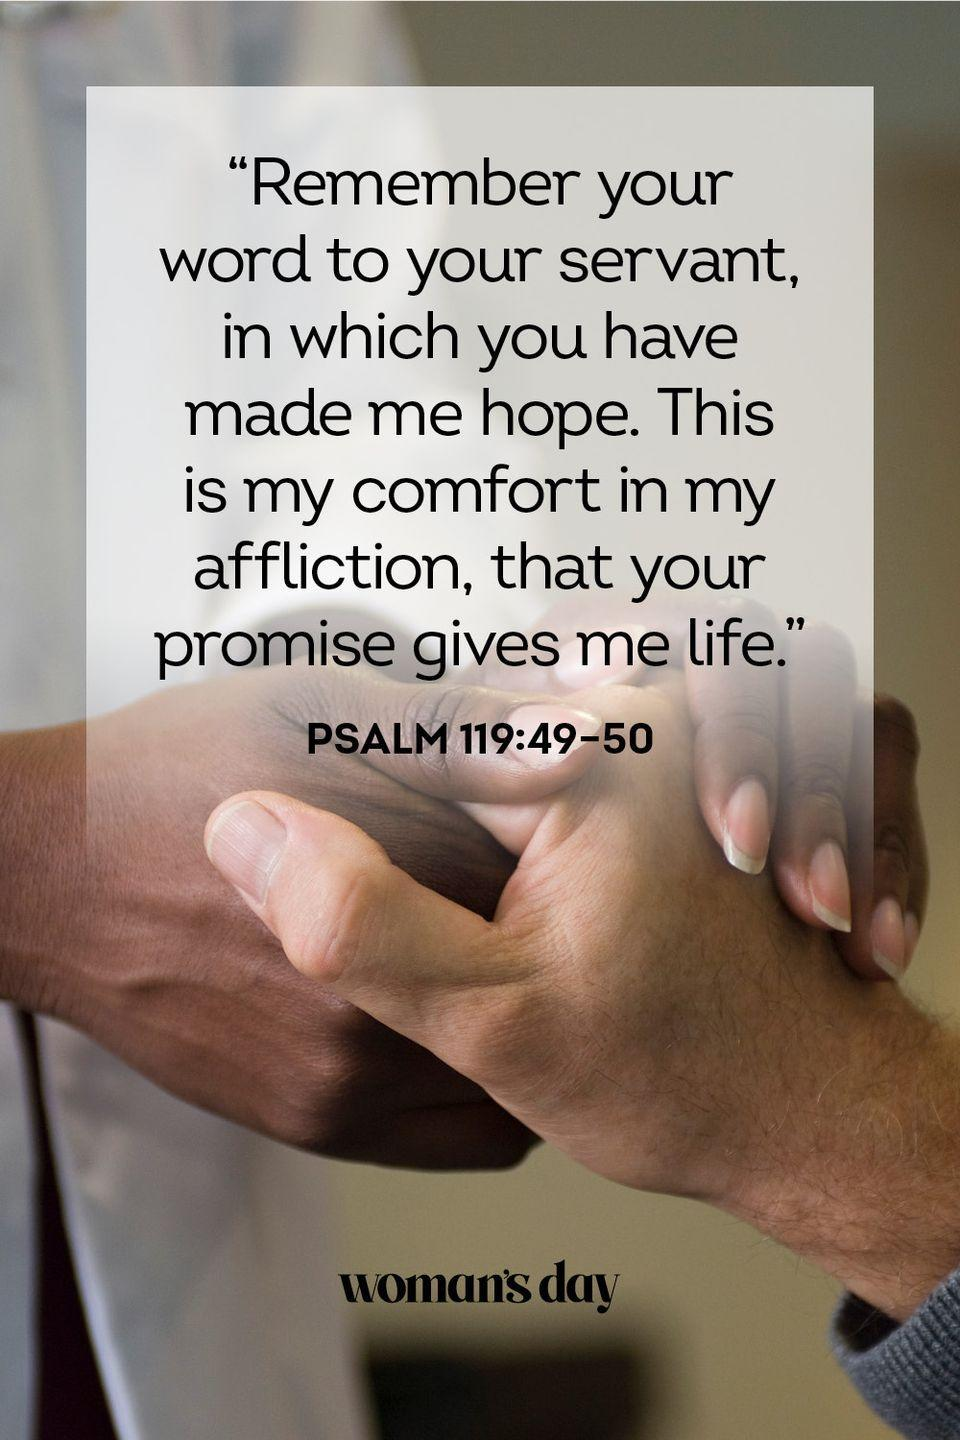 "<p>""Remember your word to your servant, in which you have made me hope. This is my comfort in my affliction, that your promise gives me life.""</p><p><strong>The Good News:</strong> Don't lose hope. God's promises never falter.</p>"